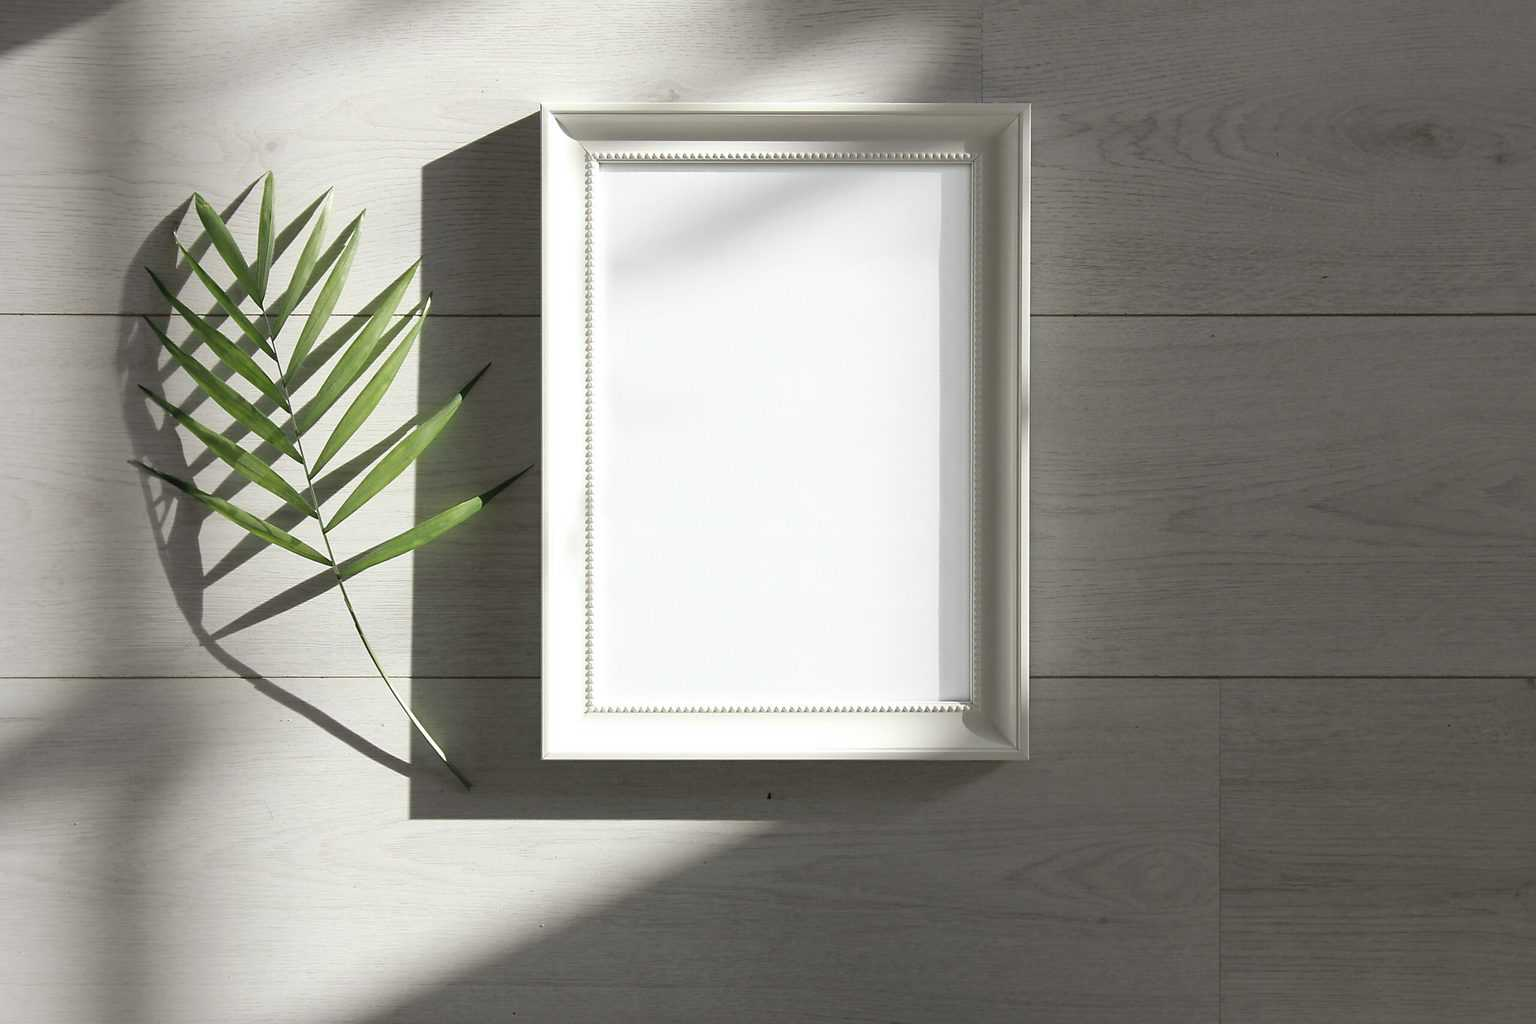 A white poster frame with sunlight and a plant branch